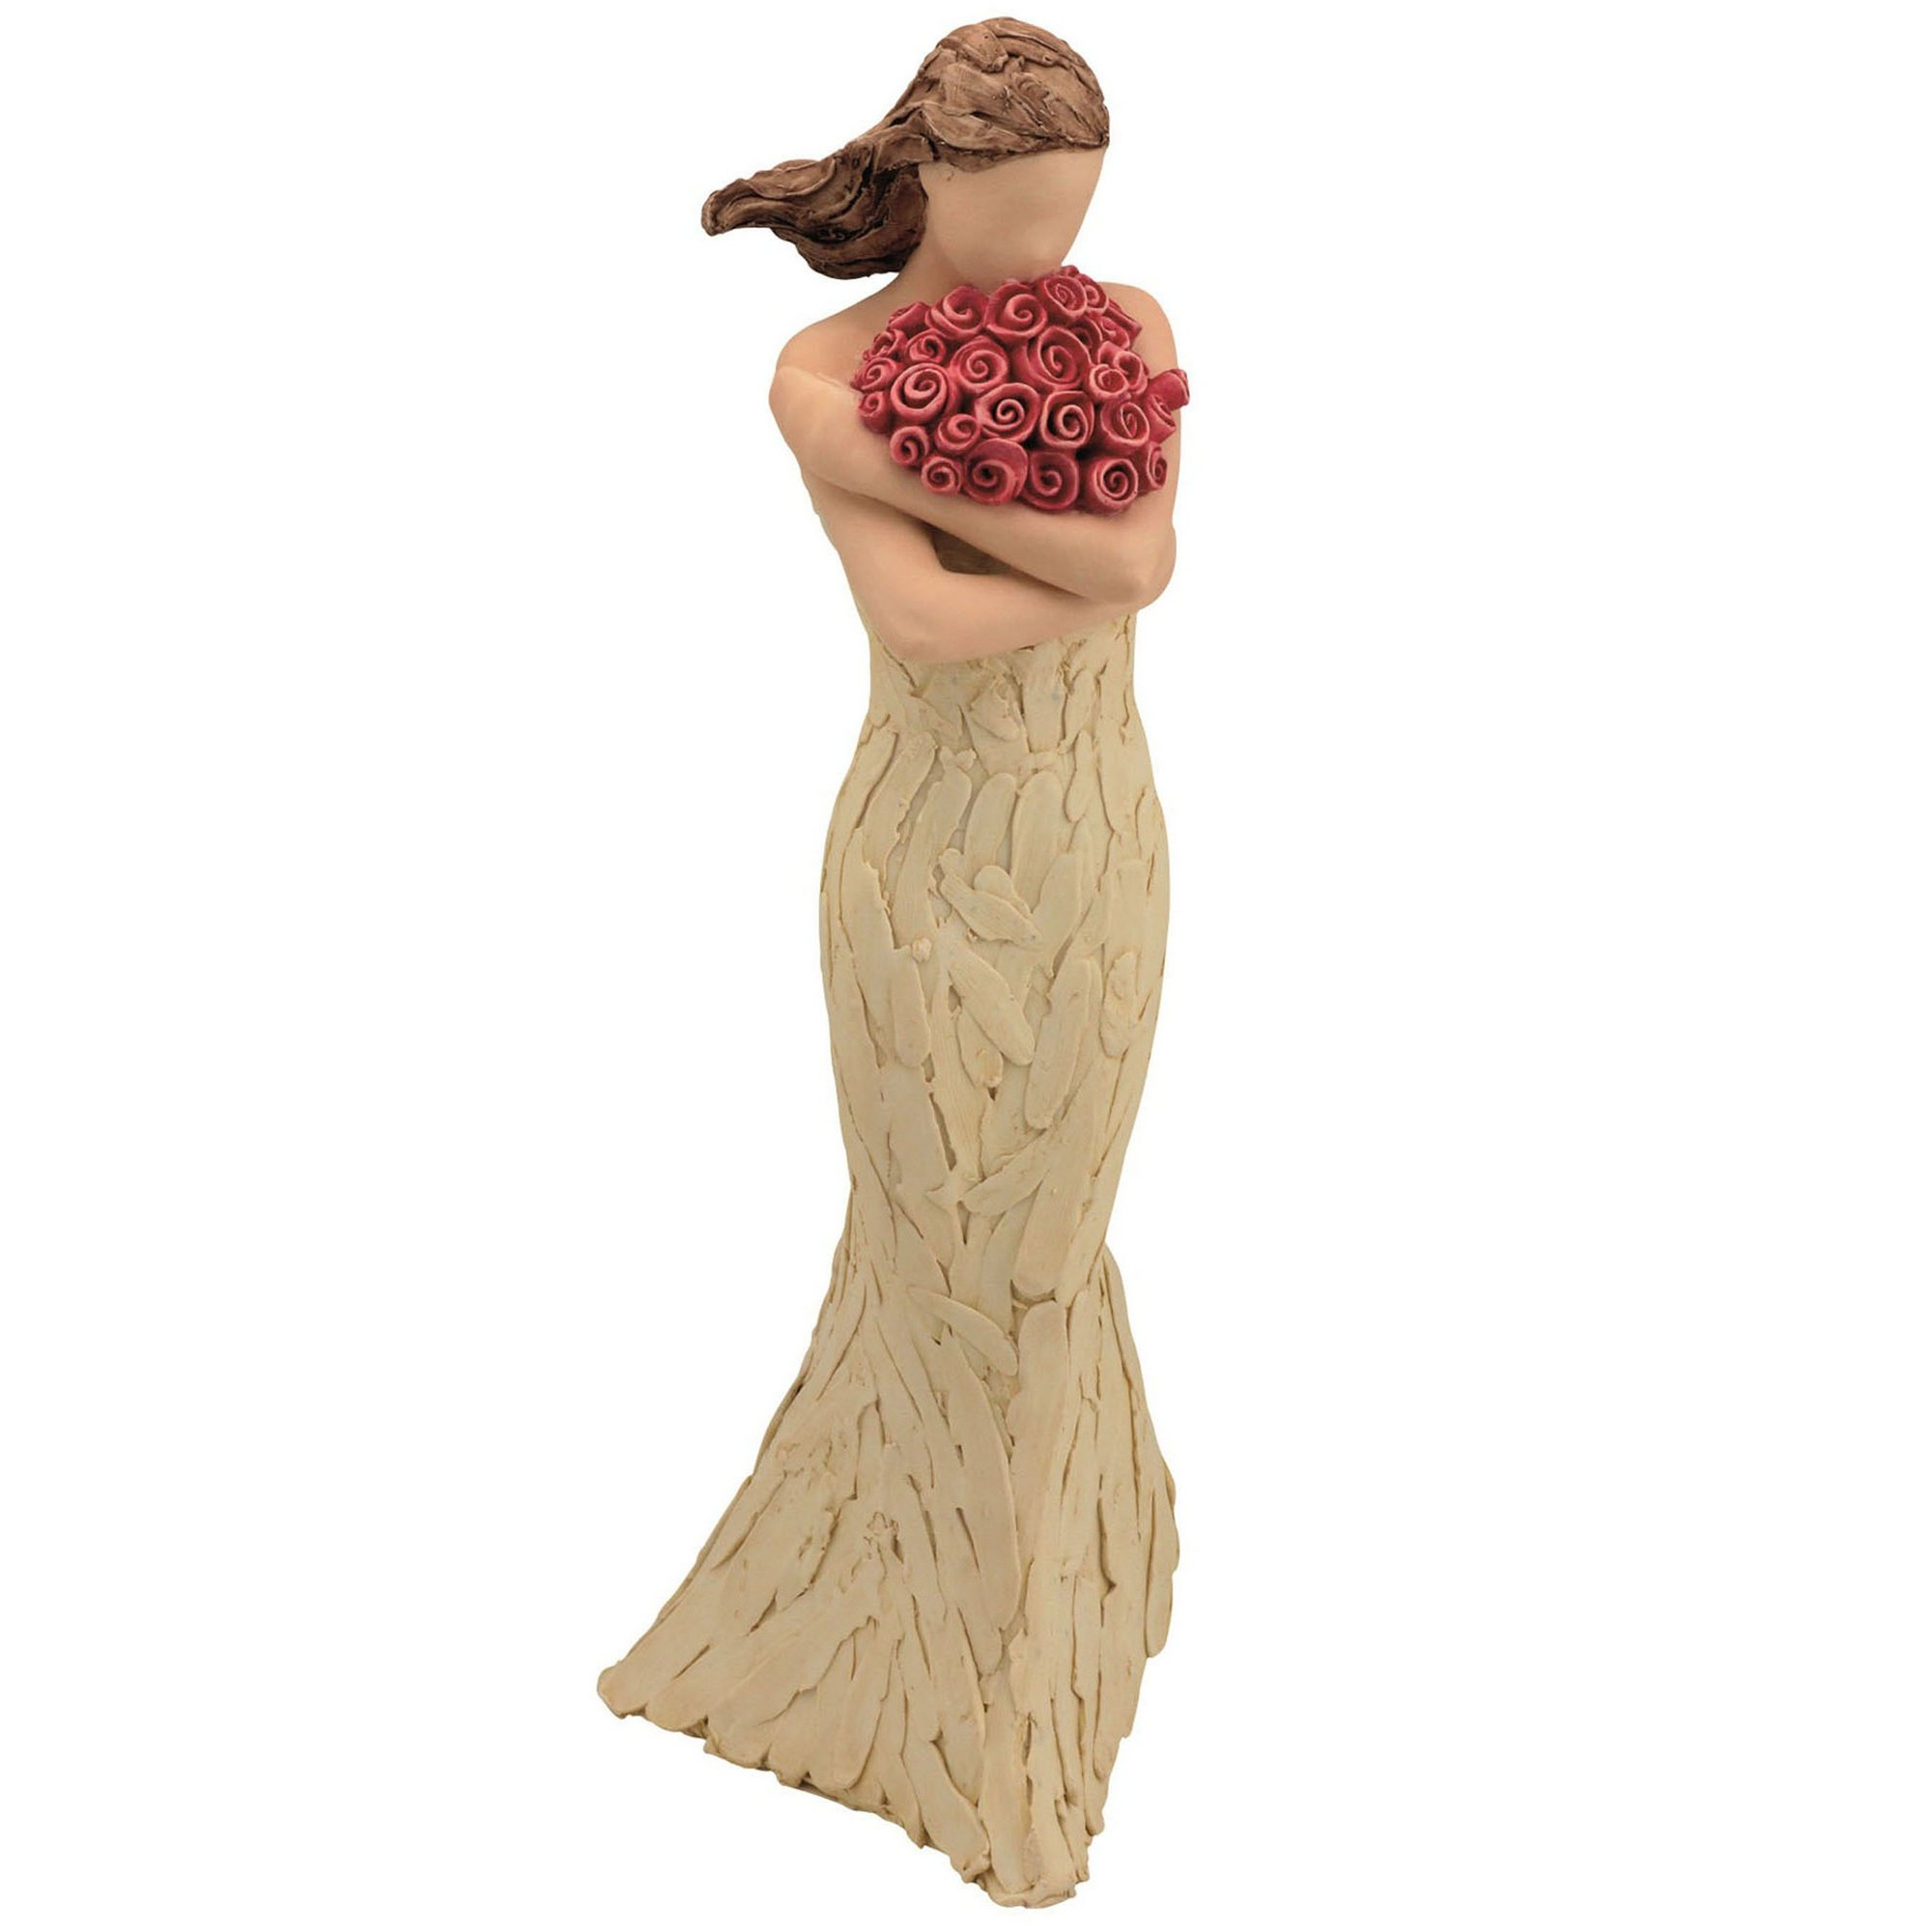 Image of More Than Words - Best Mum Figurine